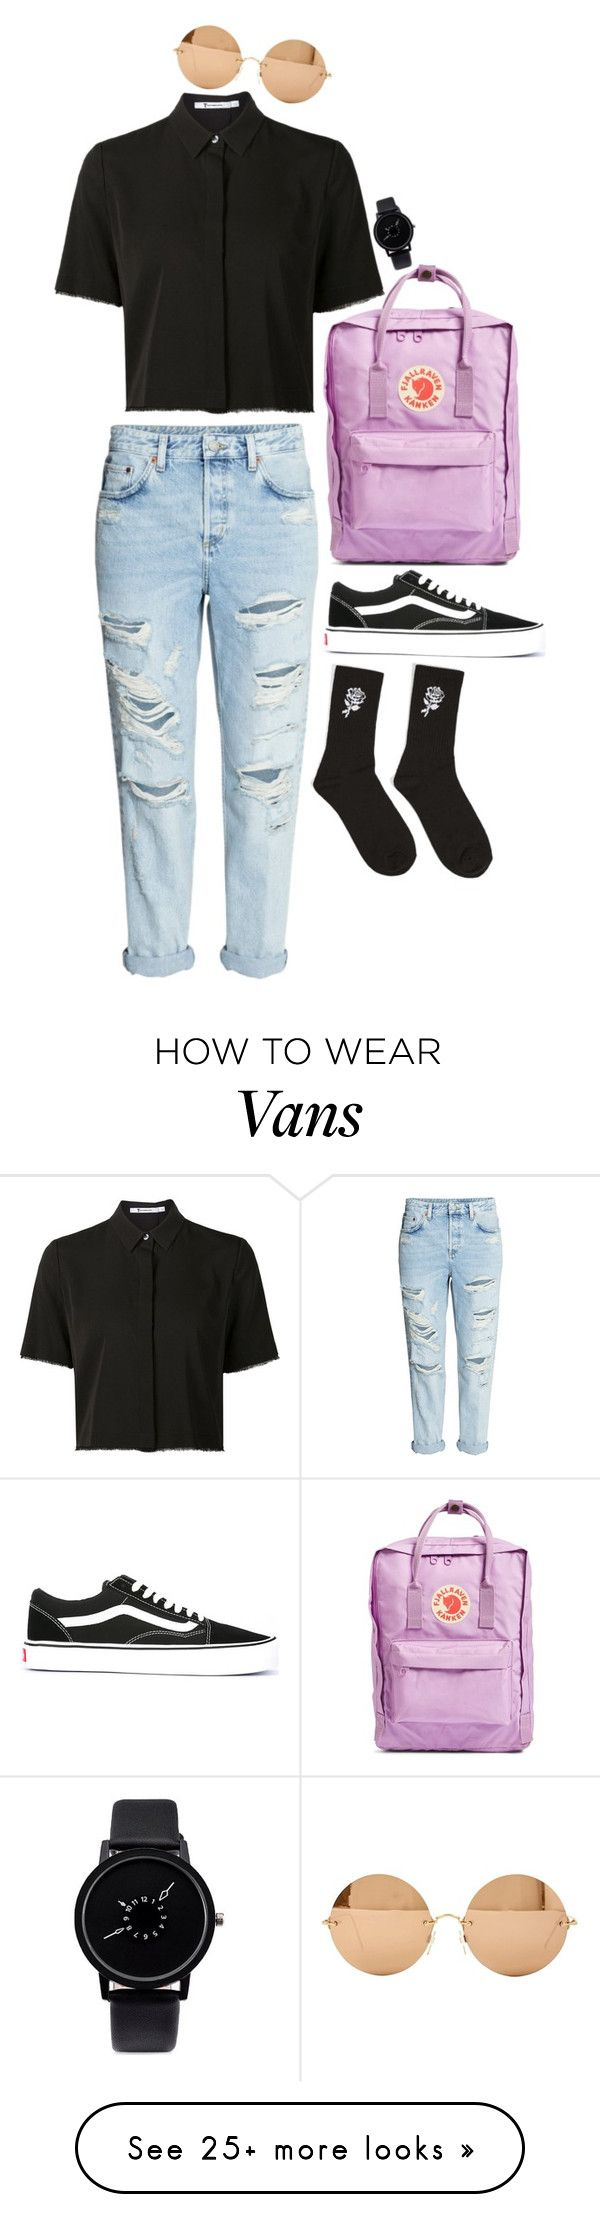 """Untitled #566"" by abigaillestrange on Polyvore featuring Alexander Wang, Victoria Beckham, Fjällräven, H&M, 21 Men and Vans"